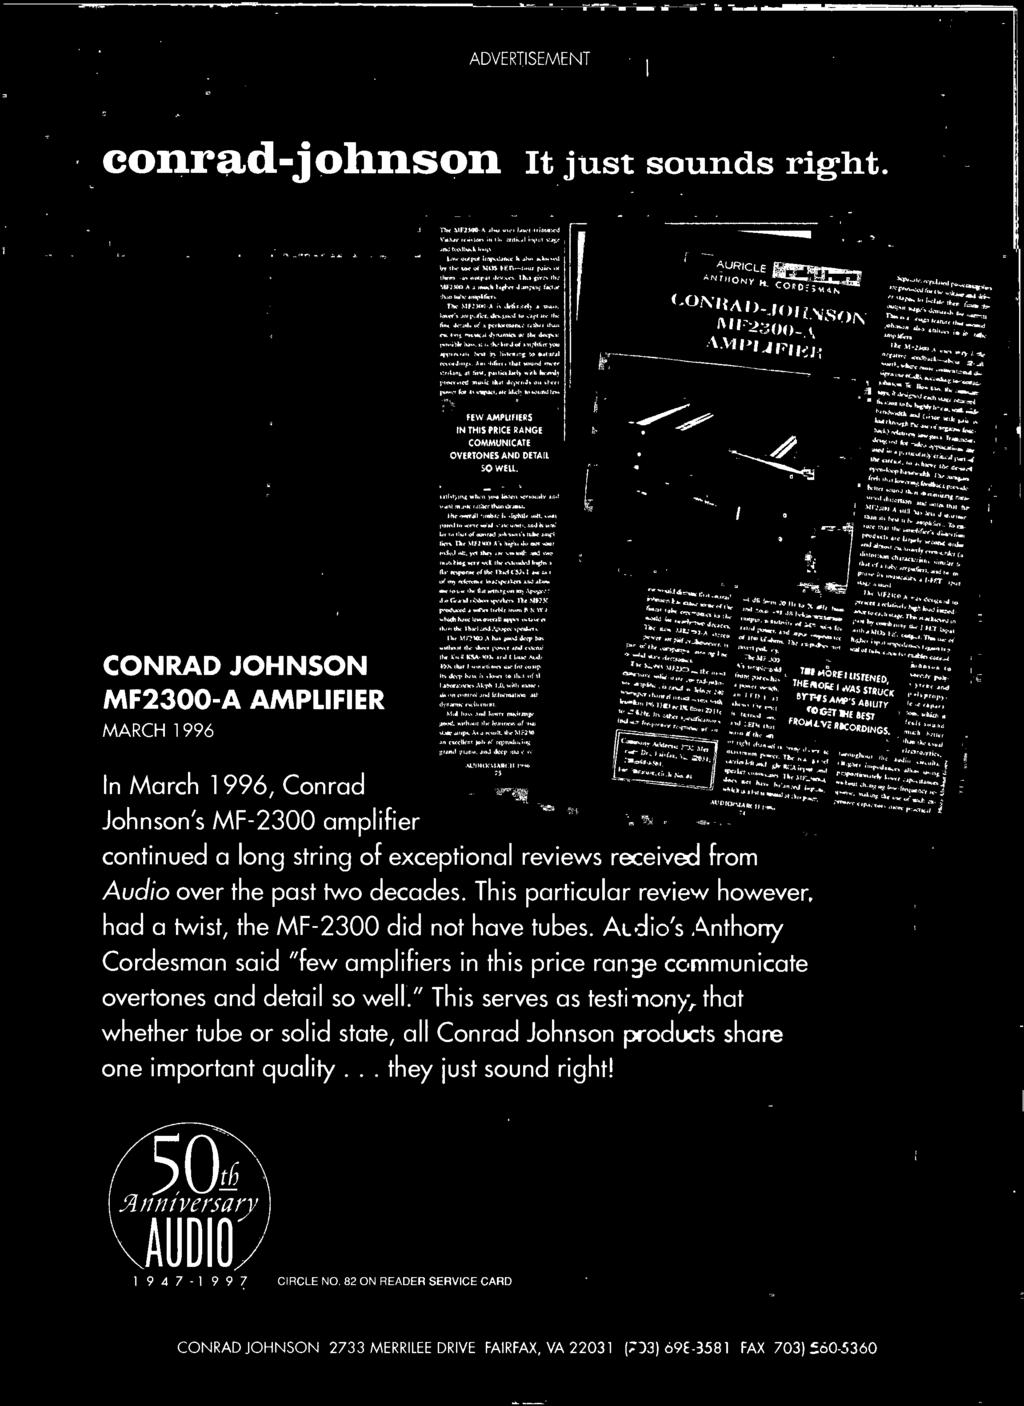 "This particular review however, had a twist, the MF -2300 did not have tubes. AL Aids Anthony Cordesman said ""few amplifiers in this price ran de communicate overtones and detail so well."